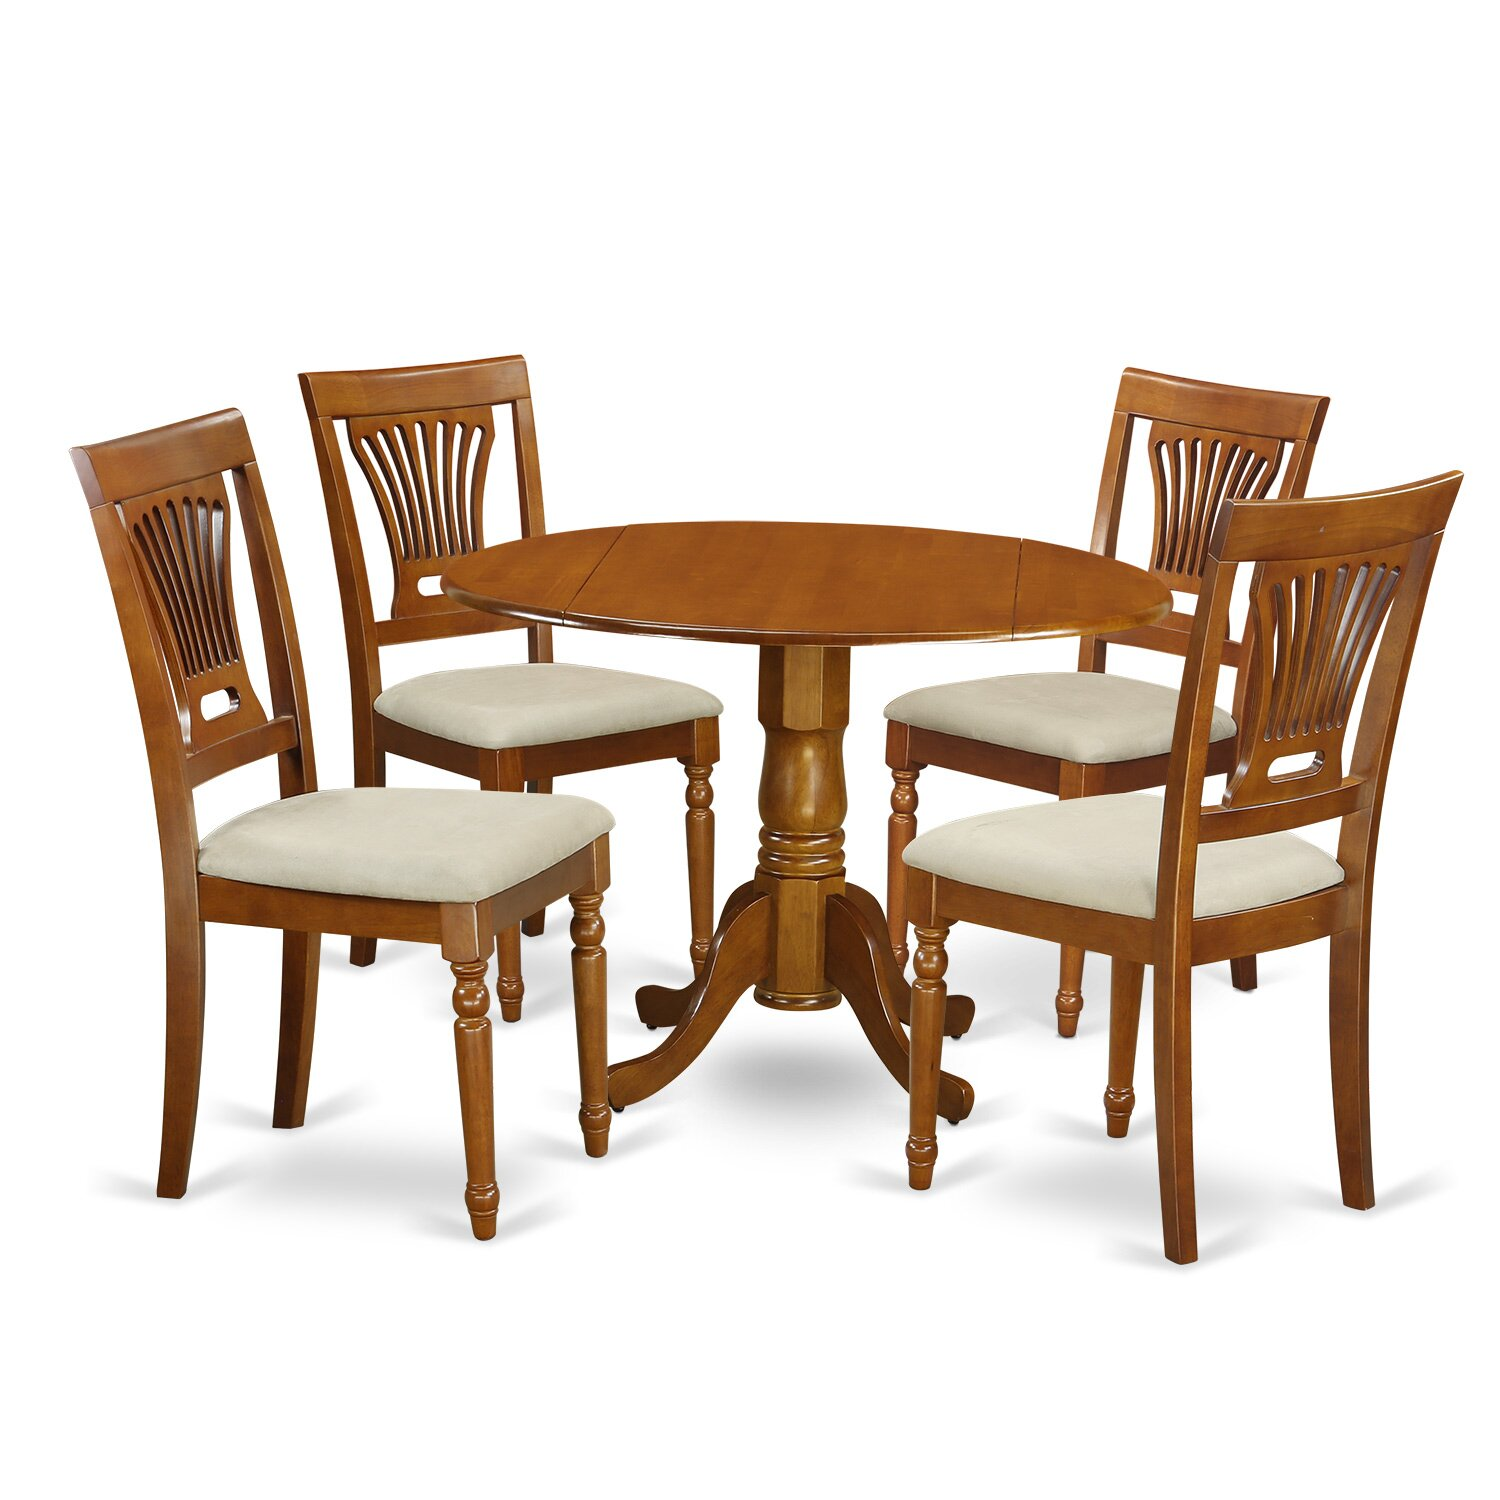 Round Dining Table Set: Wooden Importers Dublin 5 Piece Dining Set & Reviews